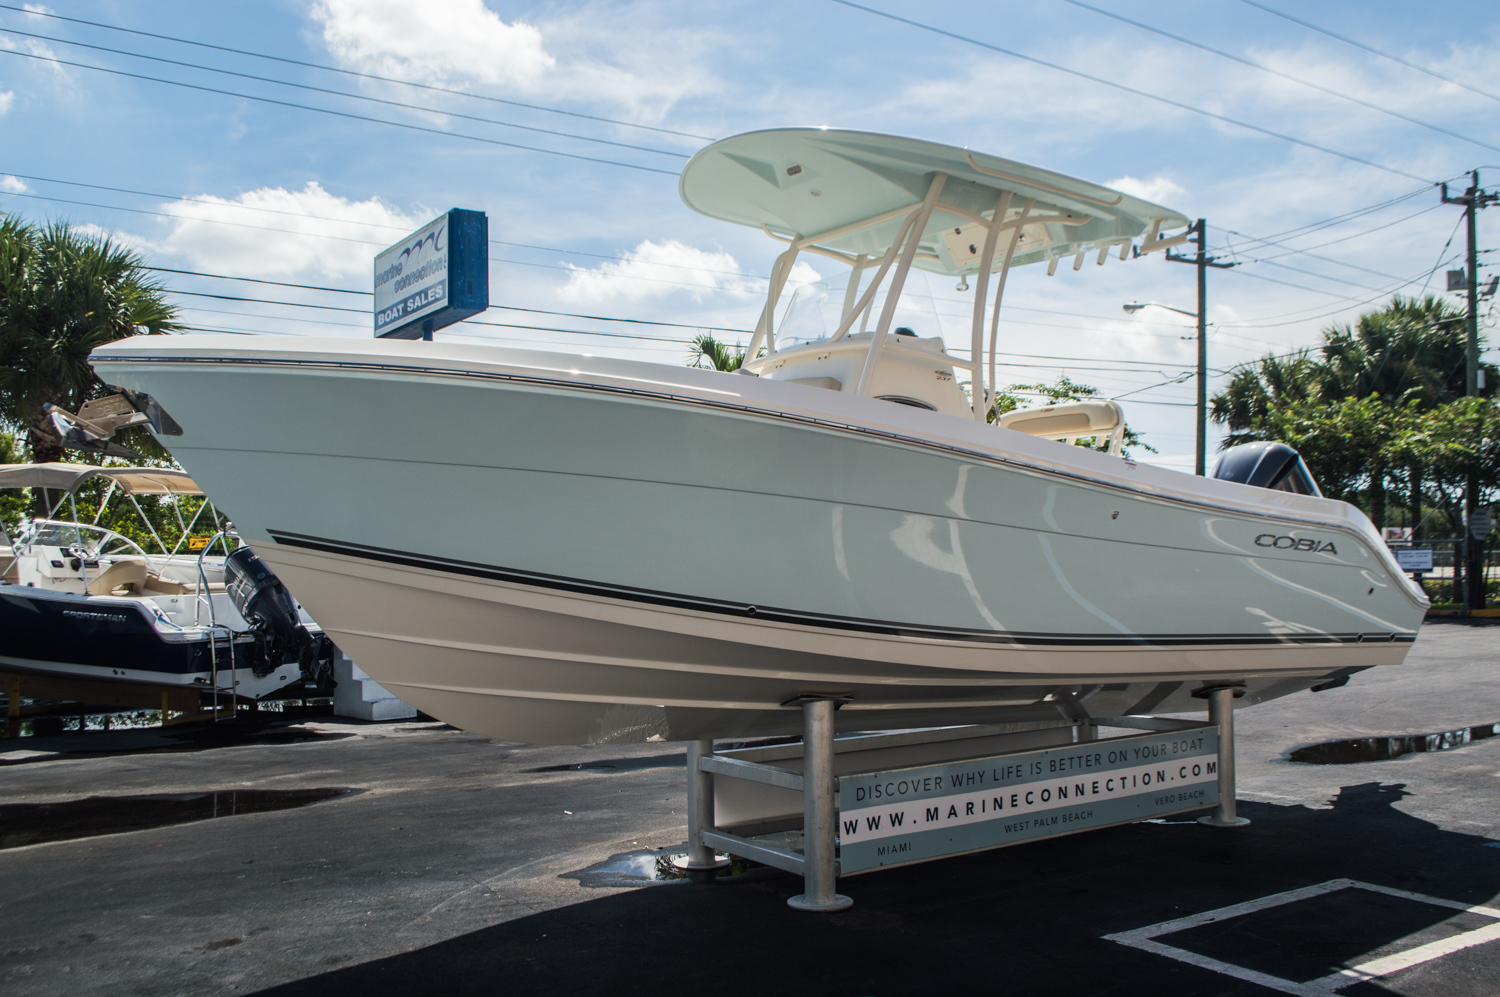 Thumbnail 3 for New 2016 Cobia 237 Center Console boat for sale in Vero Beach, FL